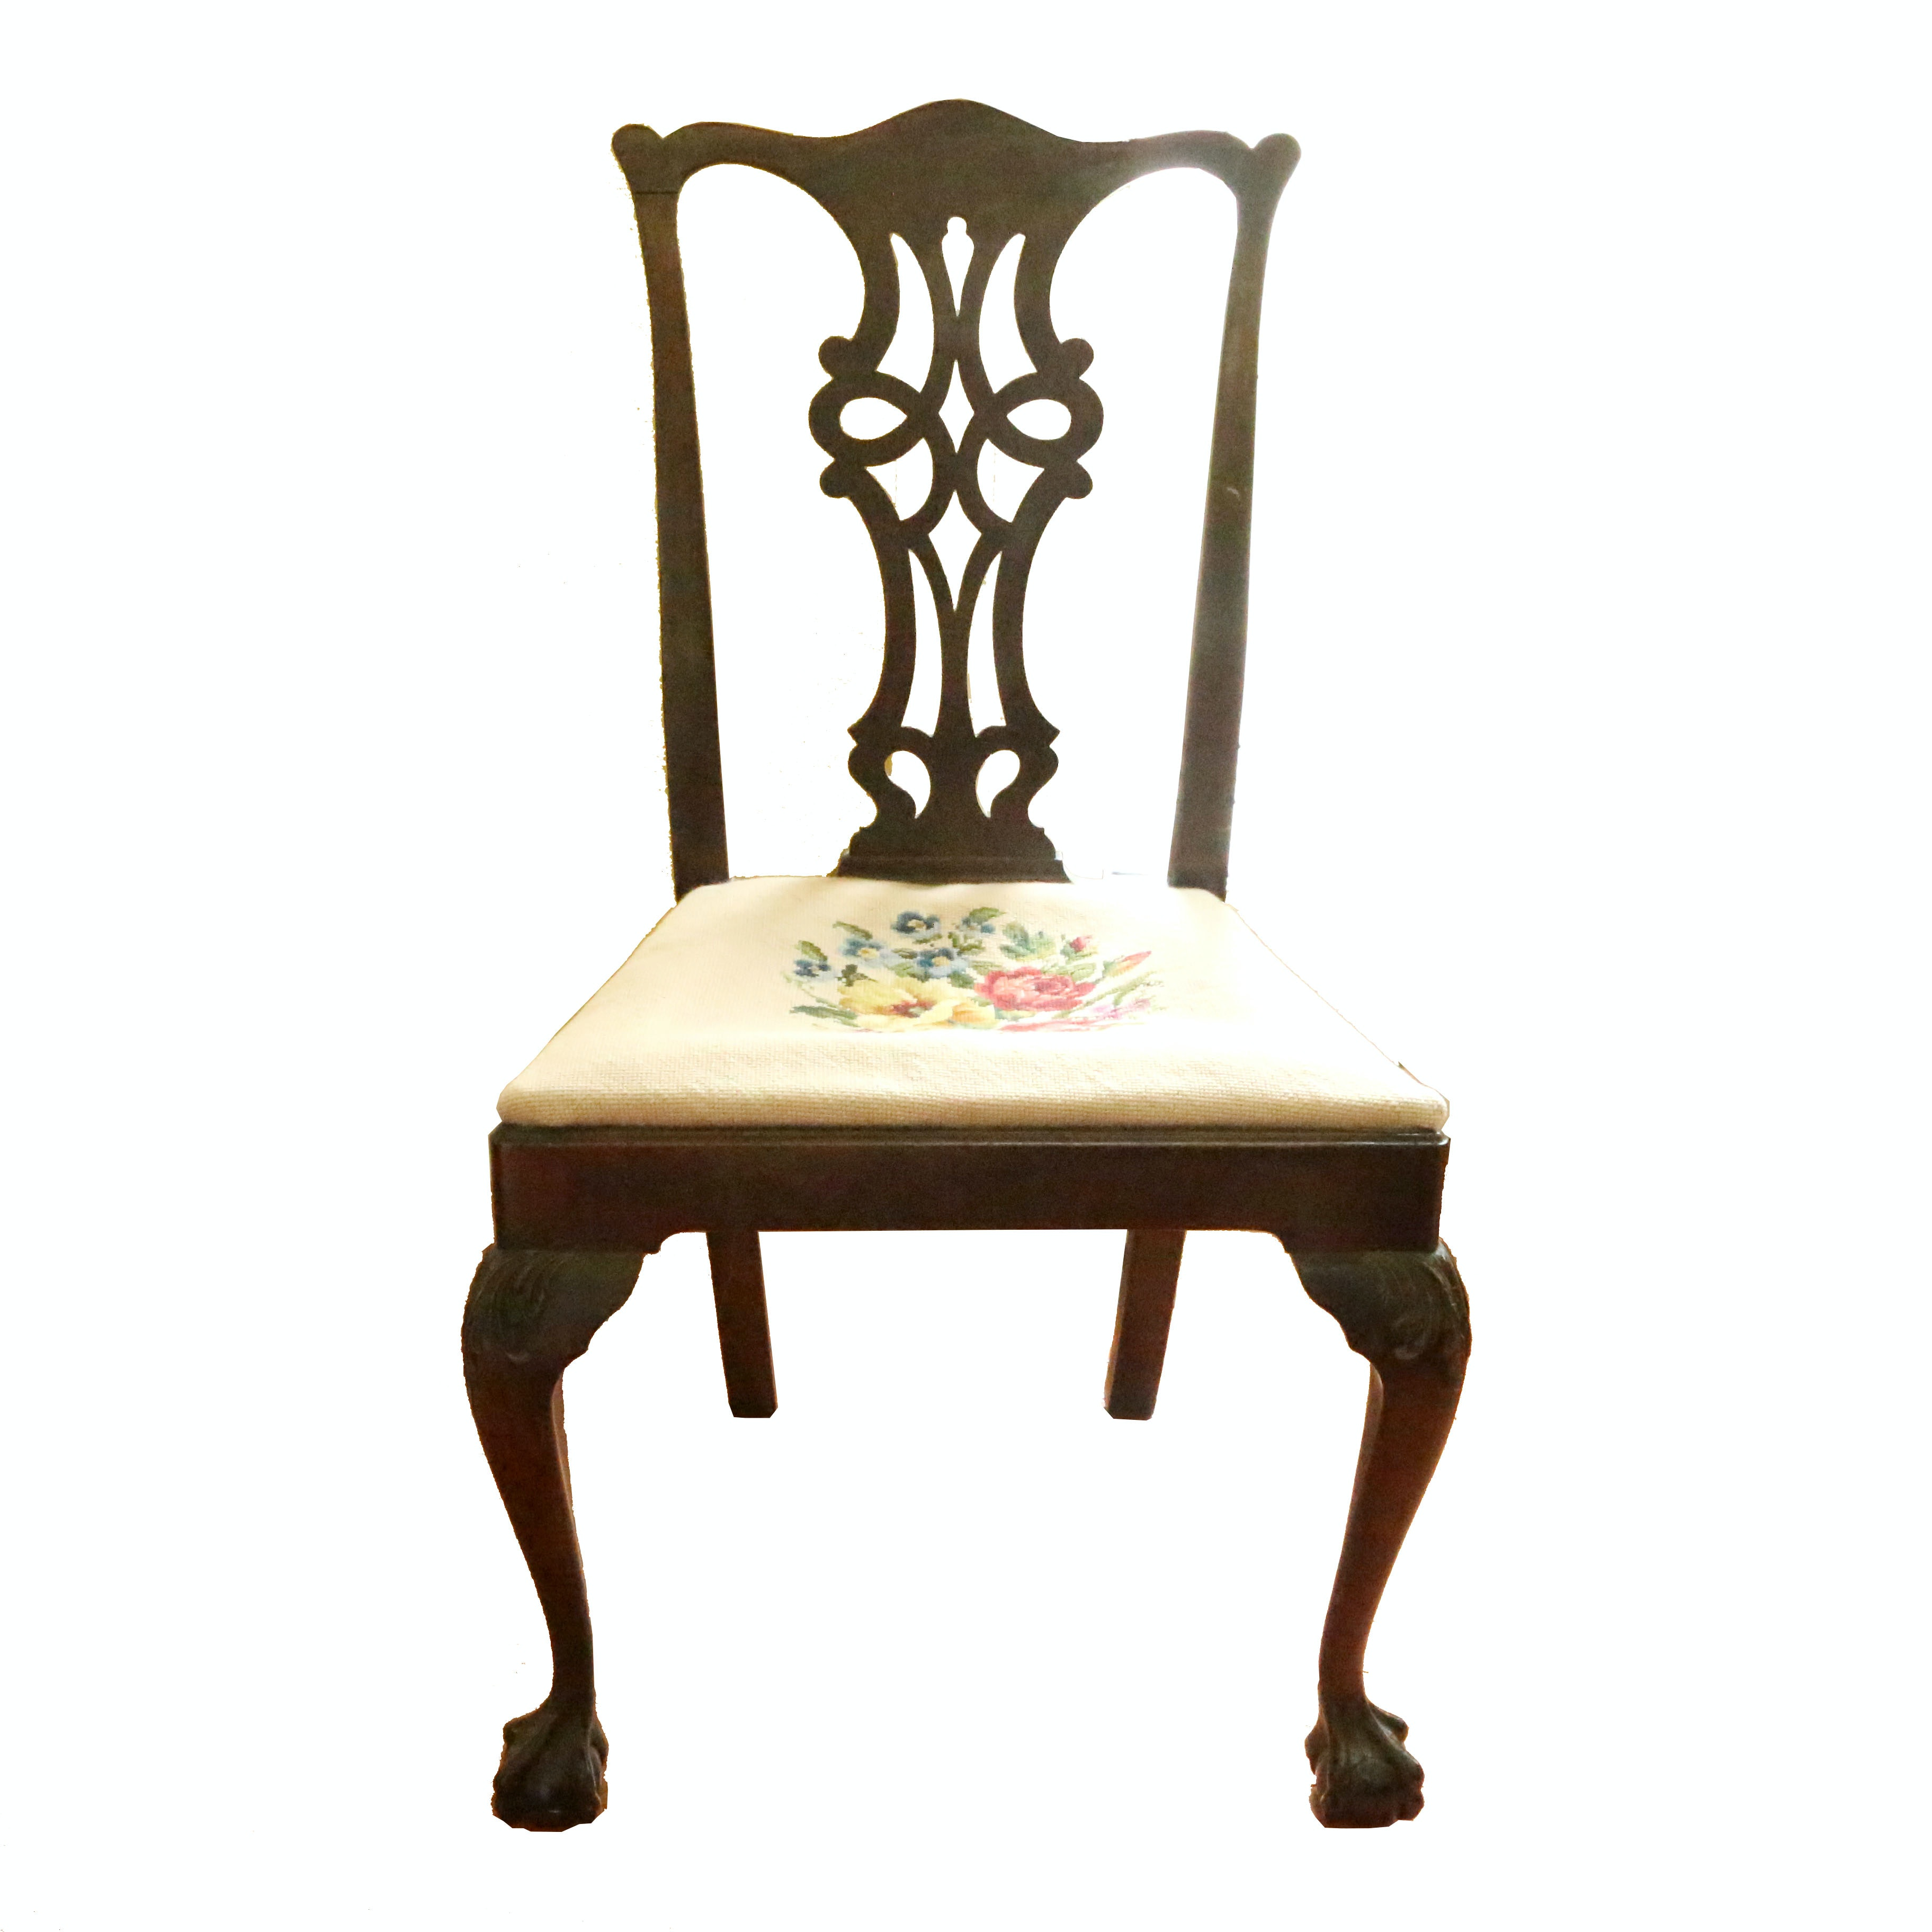 Chippendale Style Side Chair with Embroidered Seat